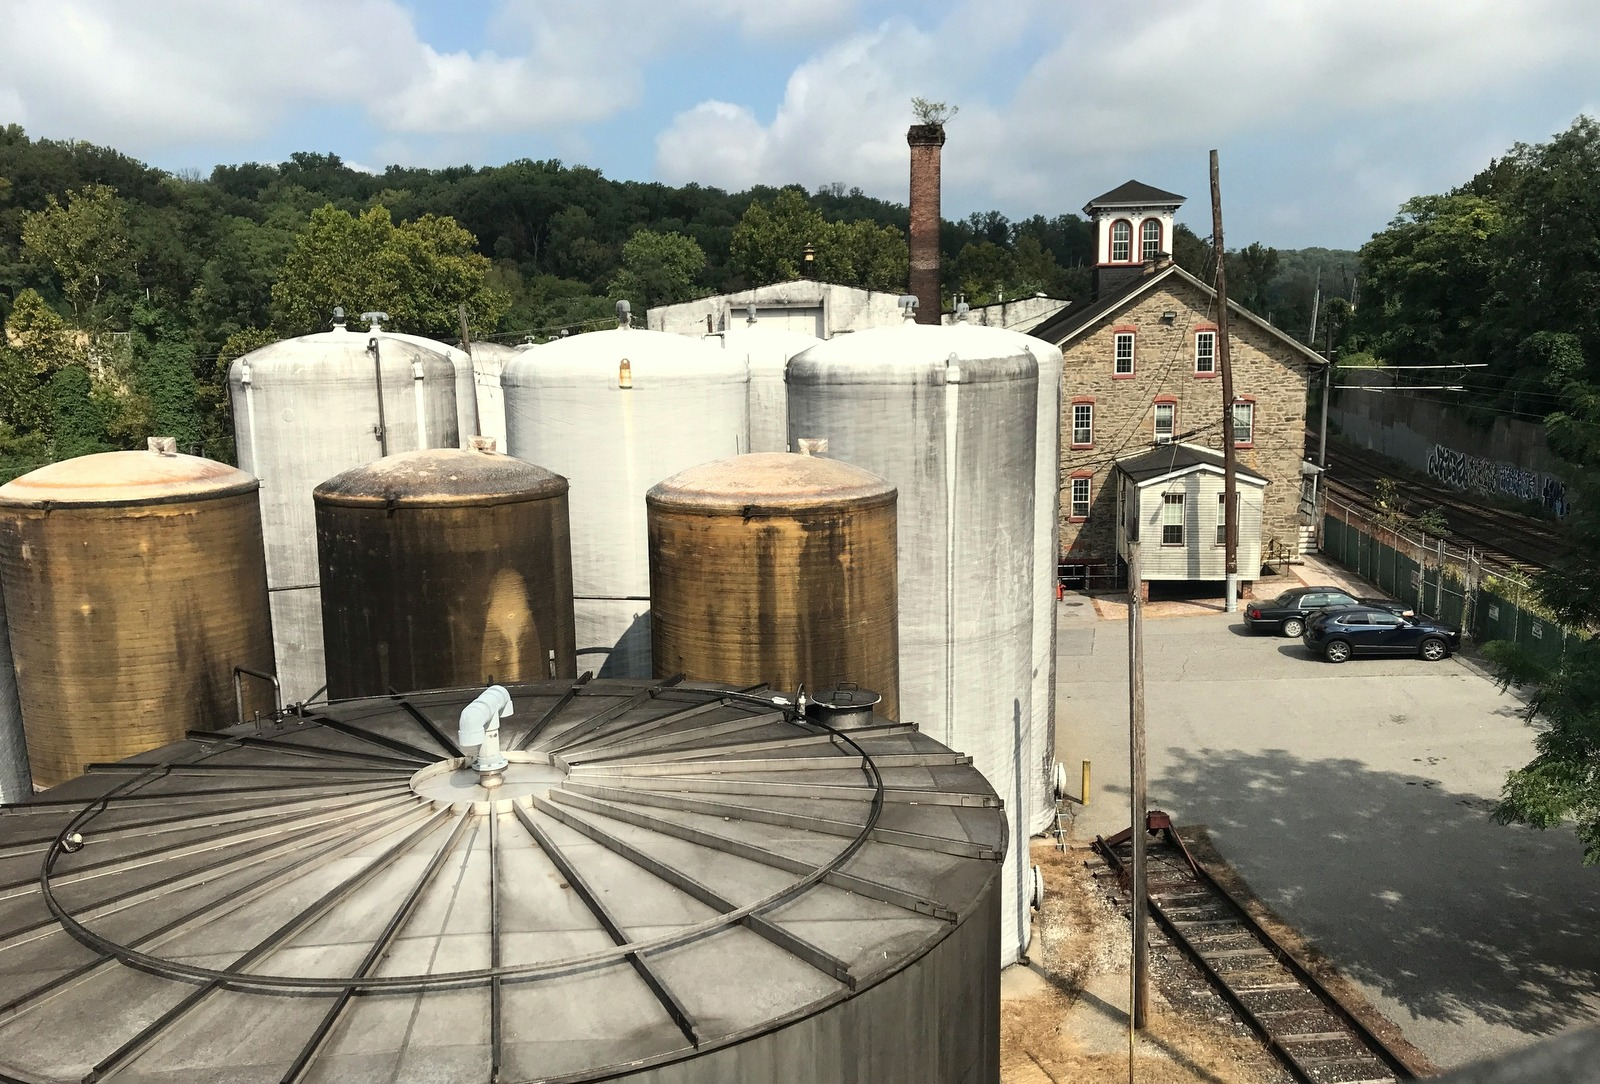 The Fleischmann's factory from the Cold Spring Lane overpass of I-83. The stone building dates back to the 19th century when the Jones Falls was a cotton-producing center. (Mark Reutter)